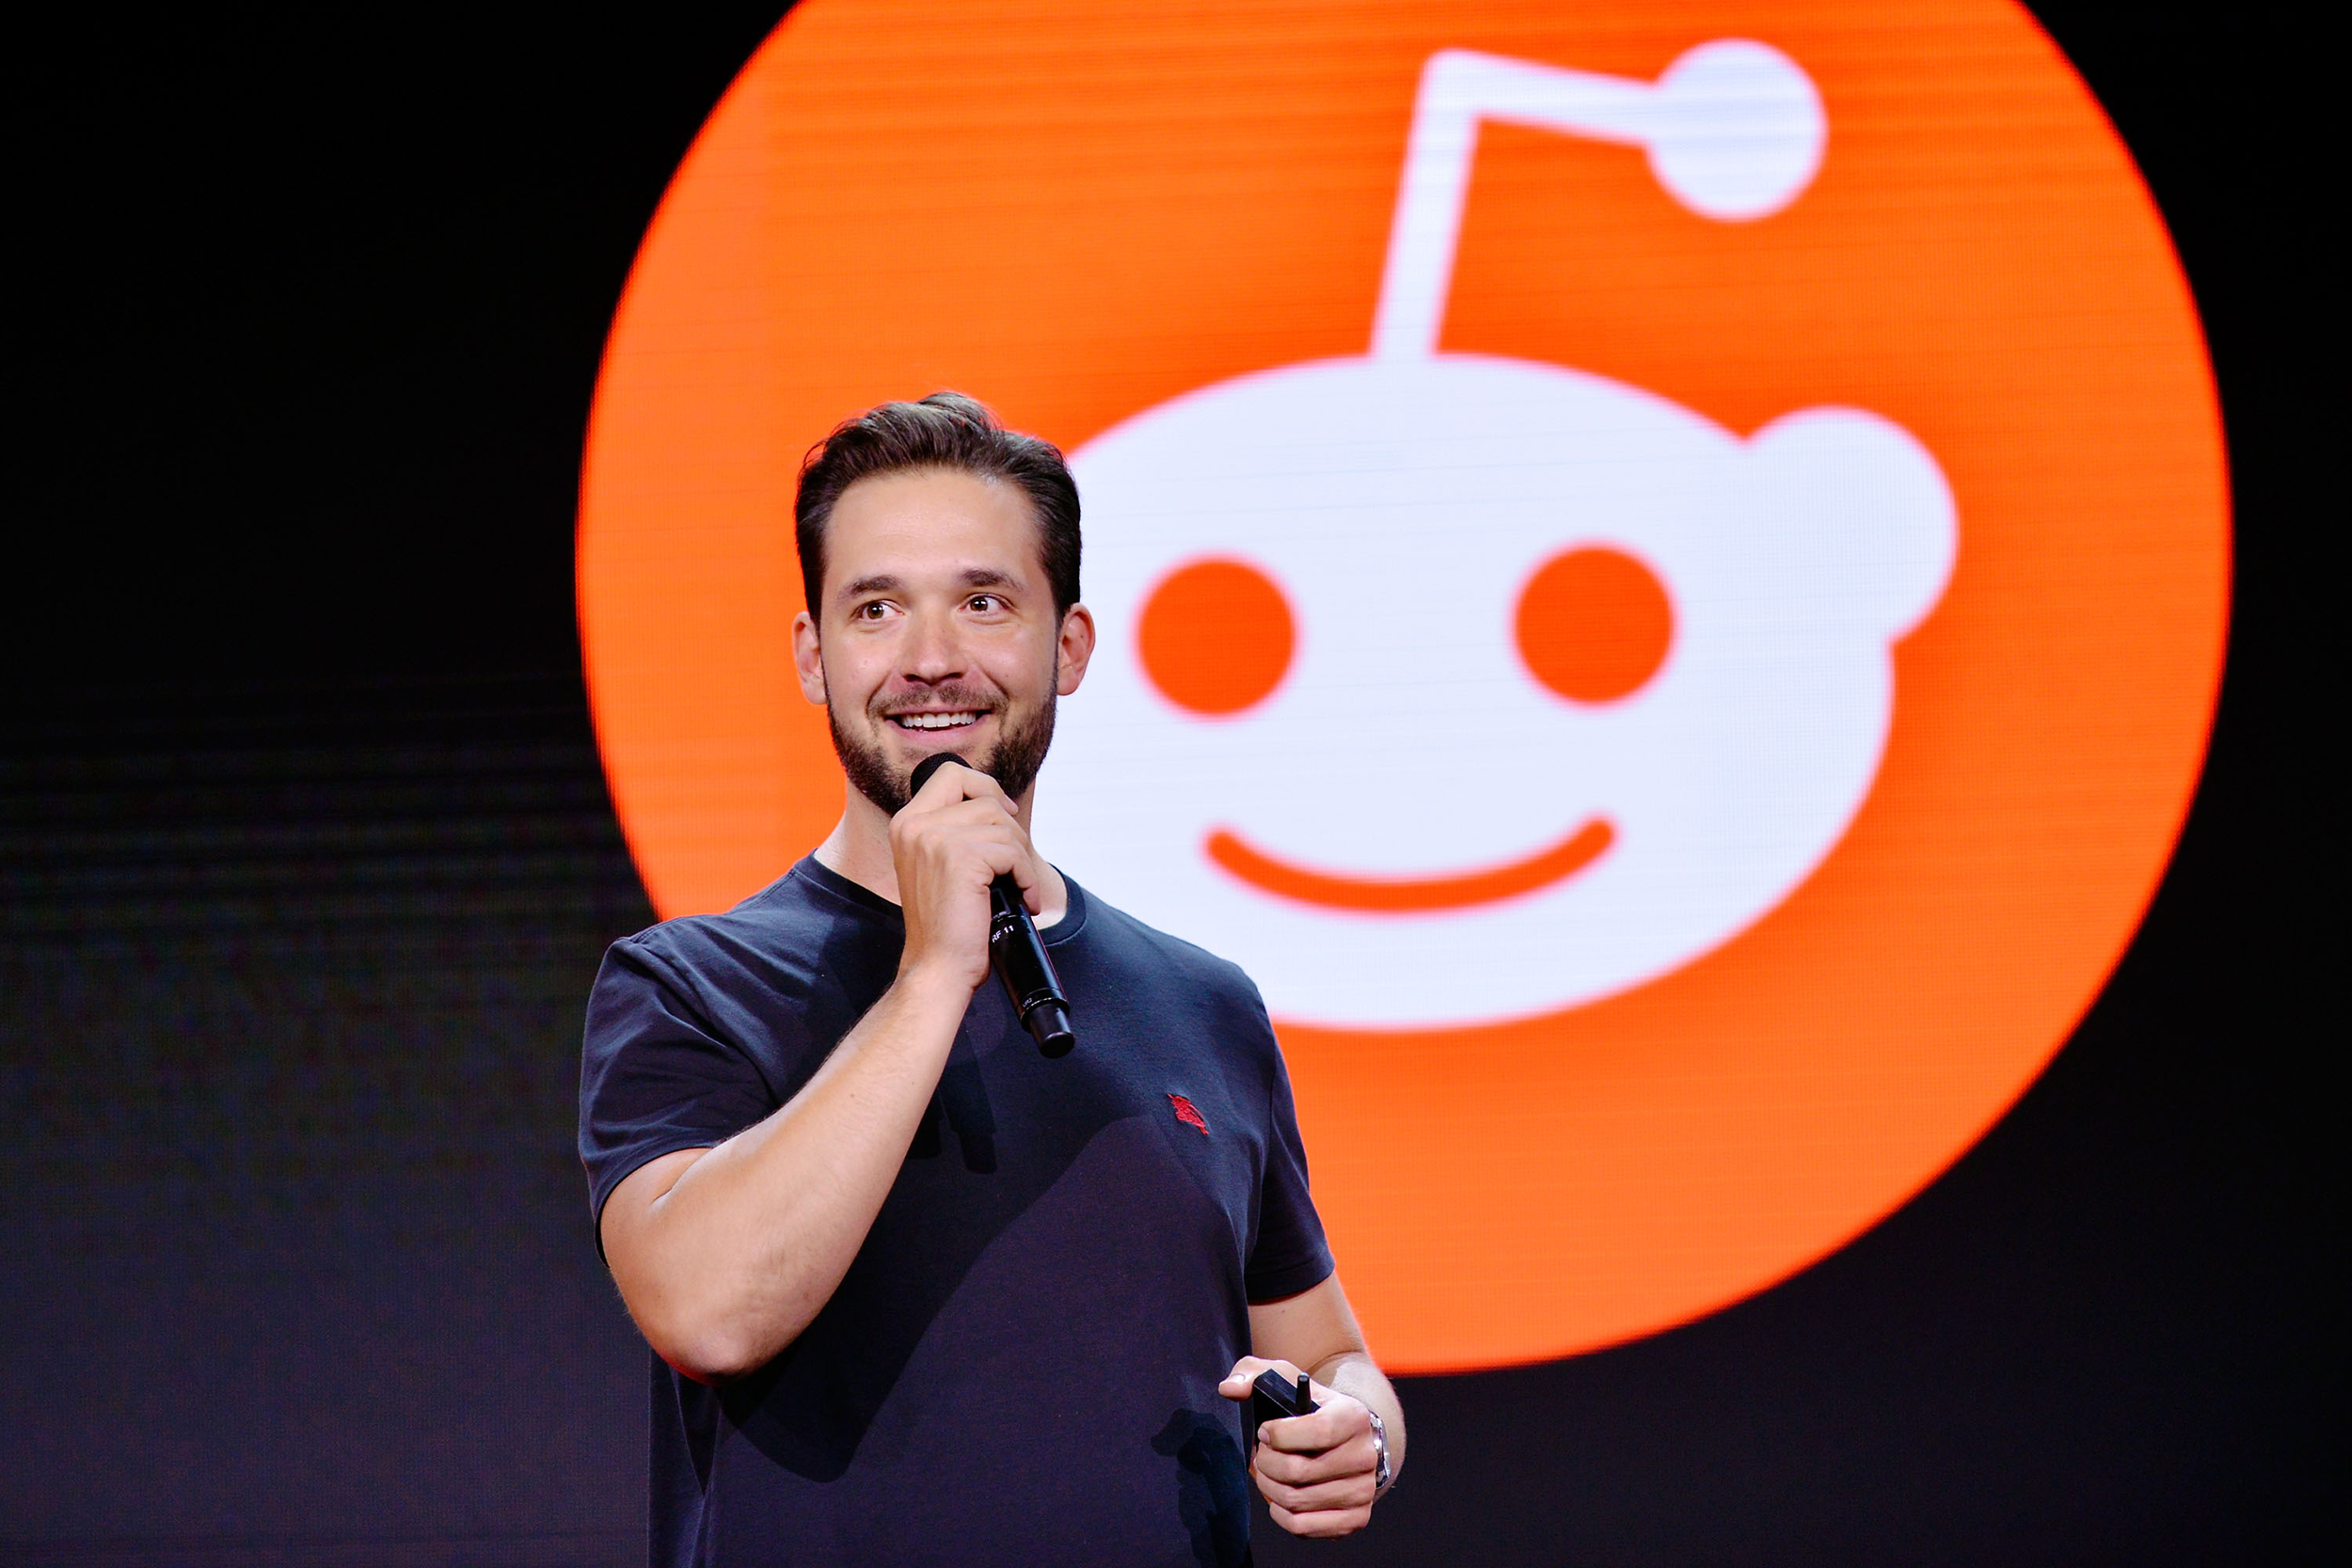 Reddit co-founder Alexis Ohanian on parental leave